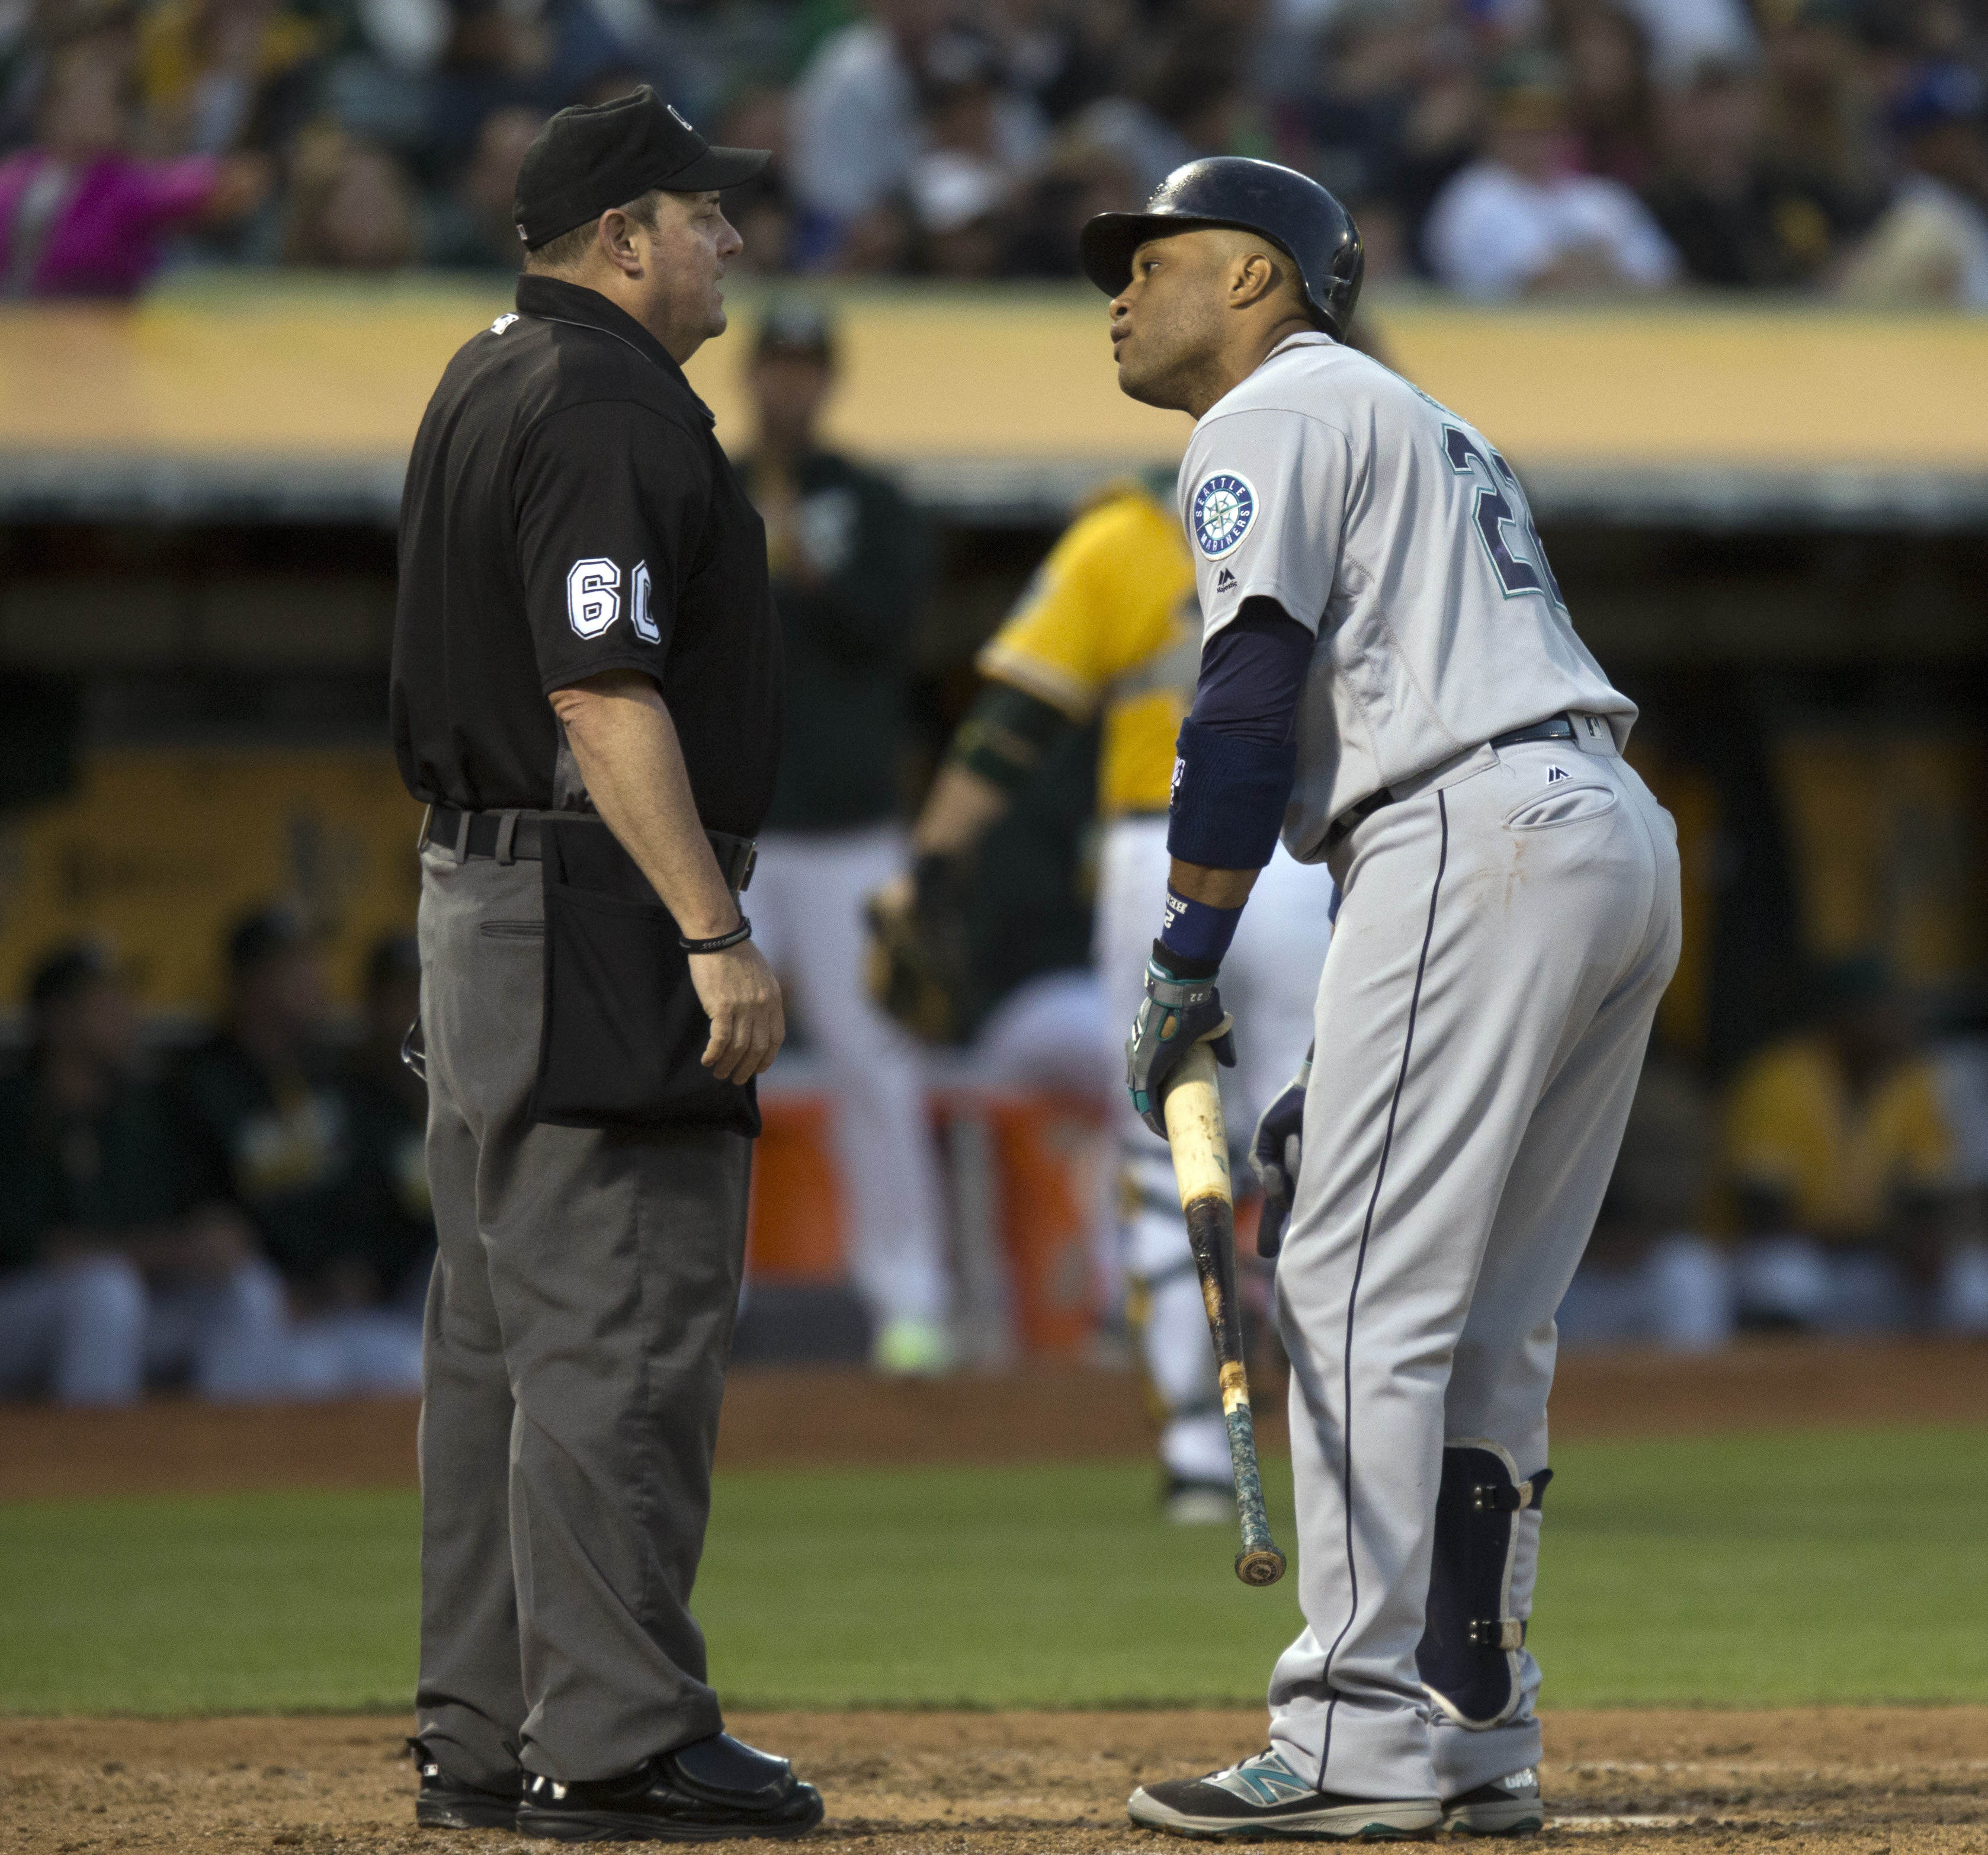 Seattle Mariners' Robinson Cano argues with home plate umpire Marty Foster after being called out on strikes during the fourth inning of a baseball game against the Oakland Athletics, Friday, Aug. 12, 2016, in Oakland, Calif. (AP Photo/D. Ross Cameron)